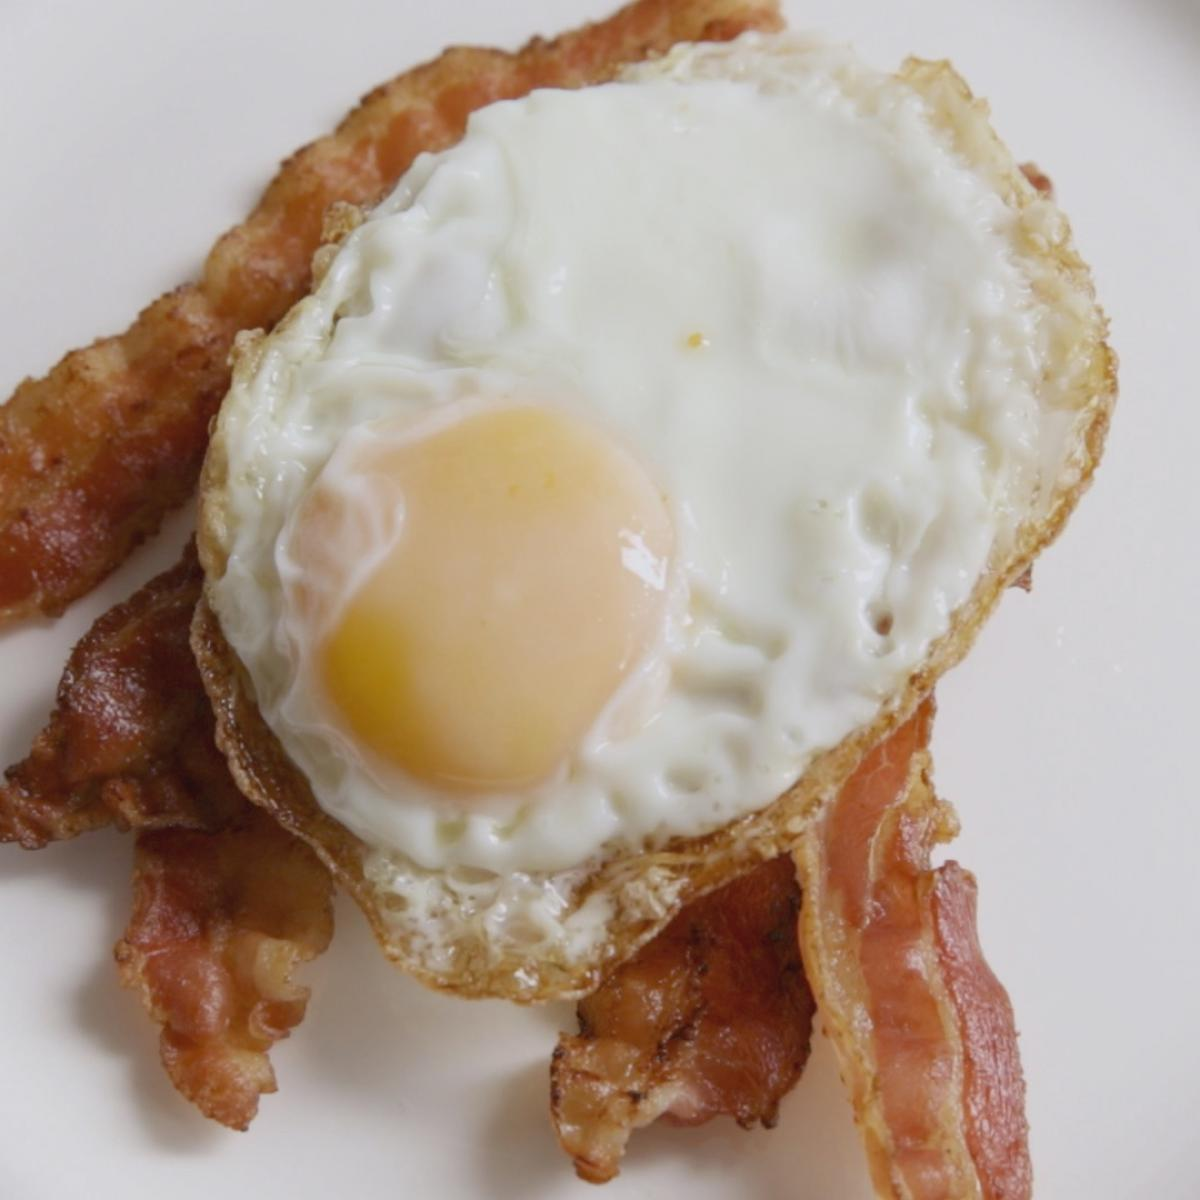 A picture of Delia's Fried Eggs recipe